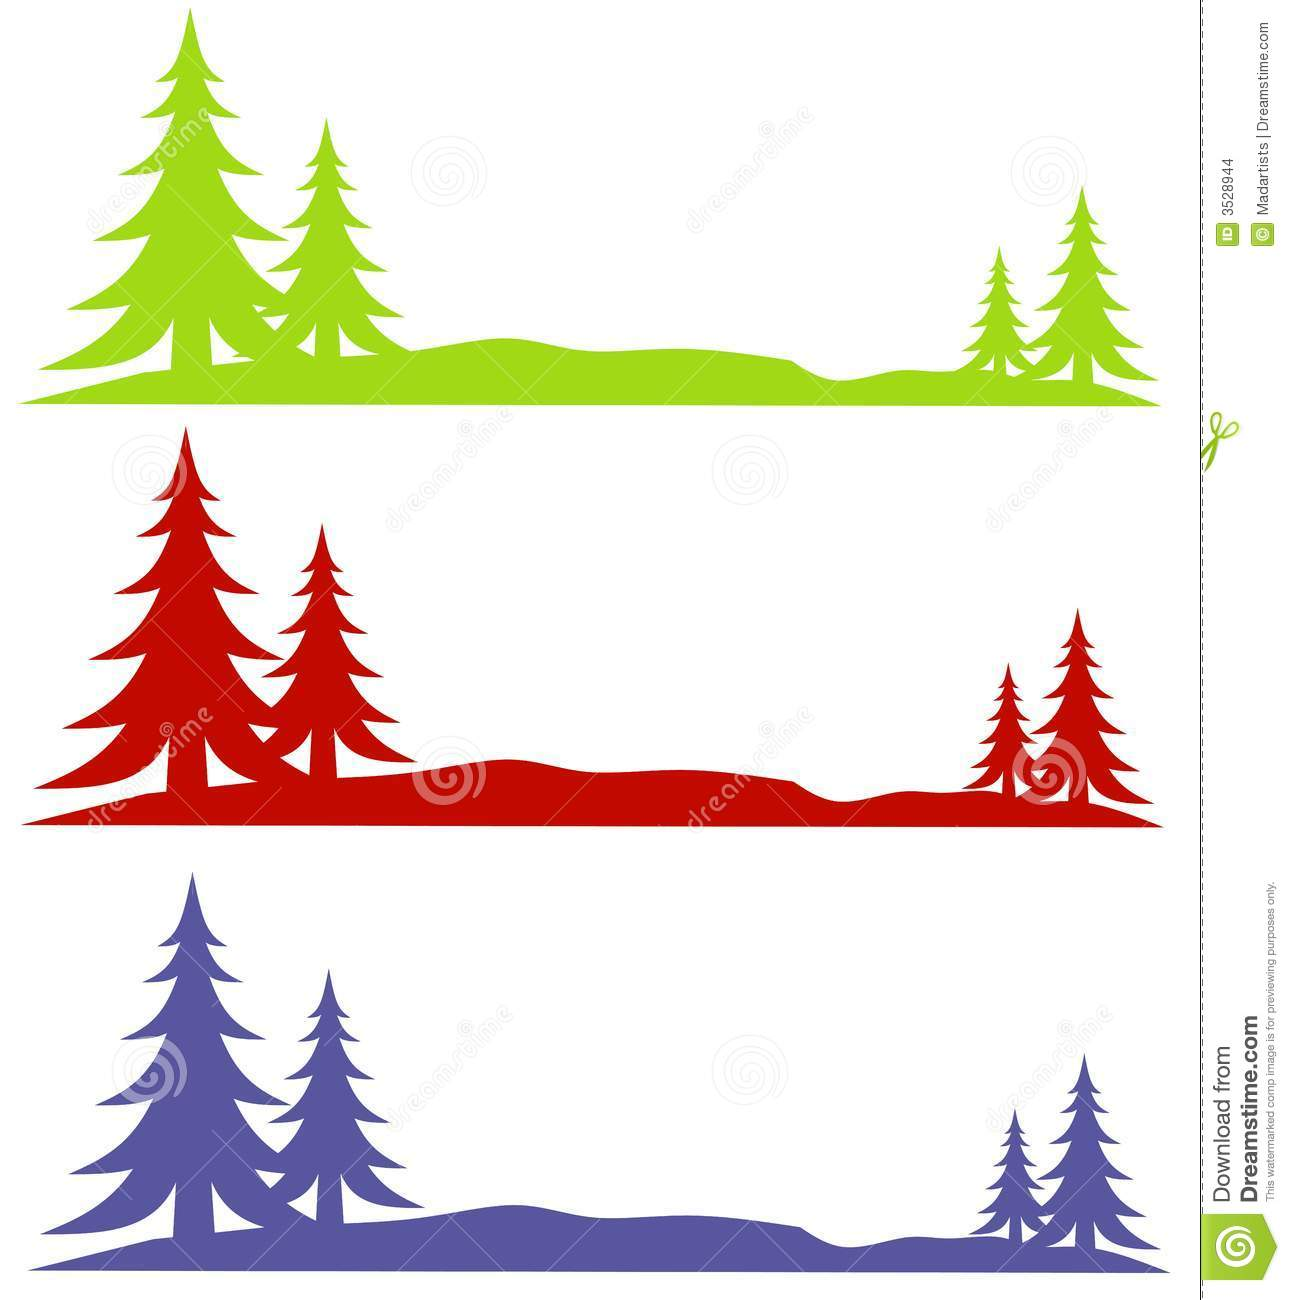 winter snow trees logos stock illustration illustration of season rh dreamstime com free winter scene clipart images free winter scene clipart images